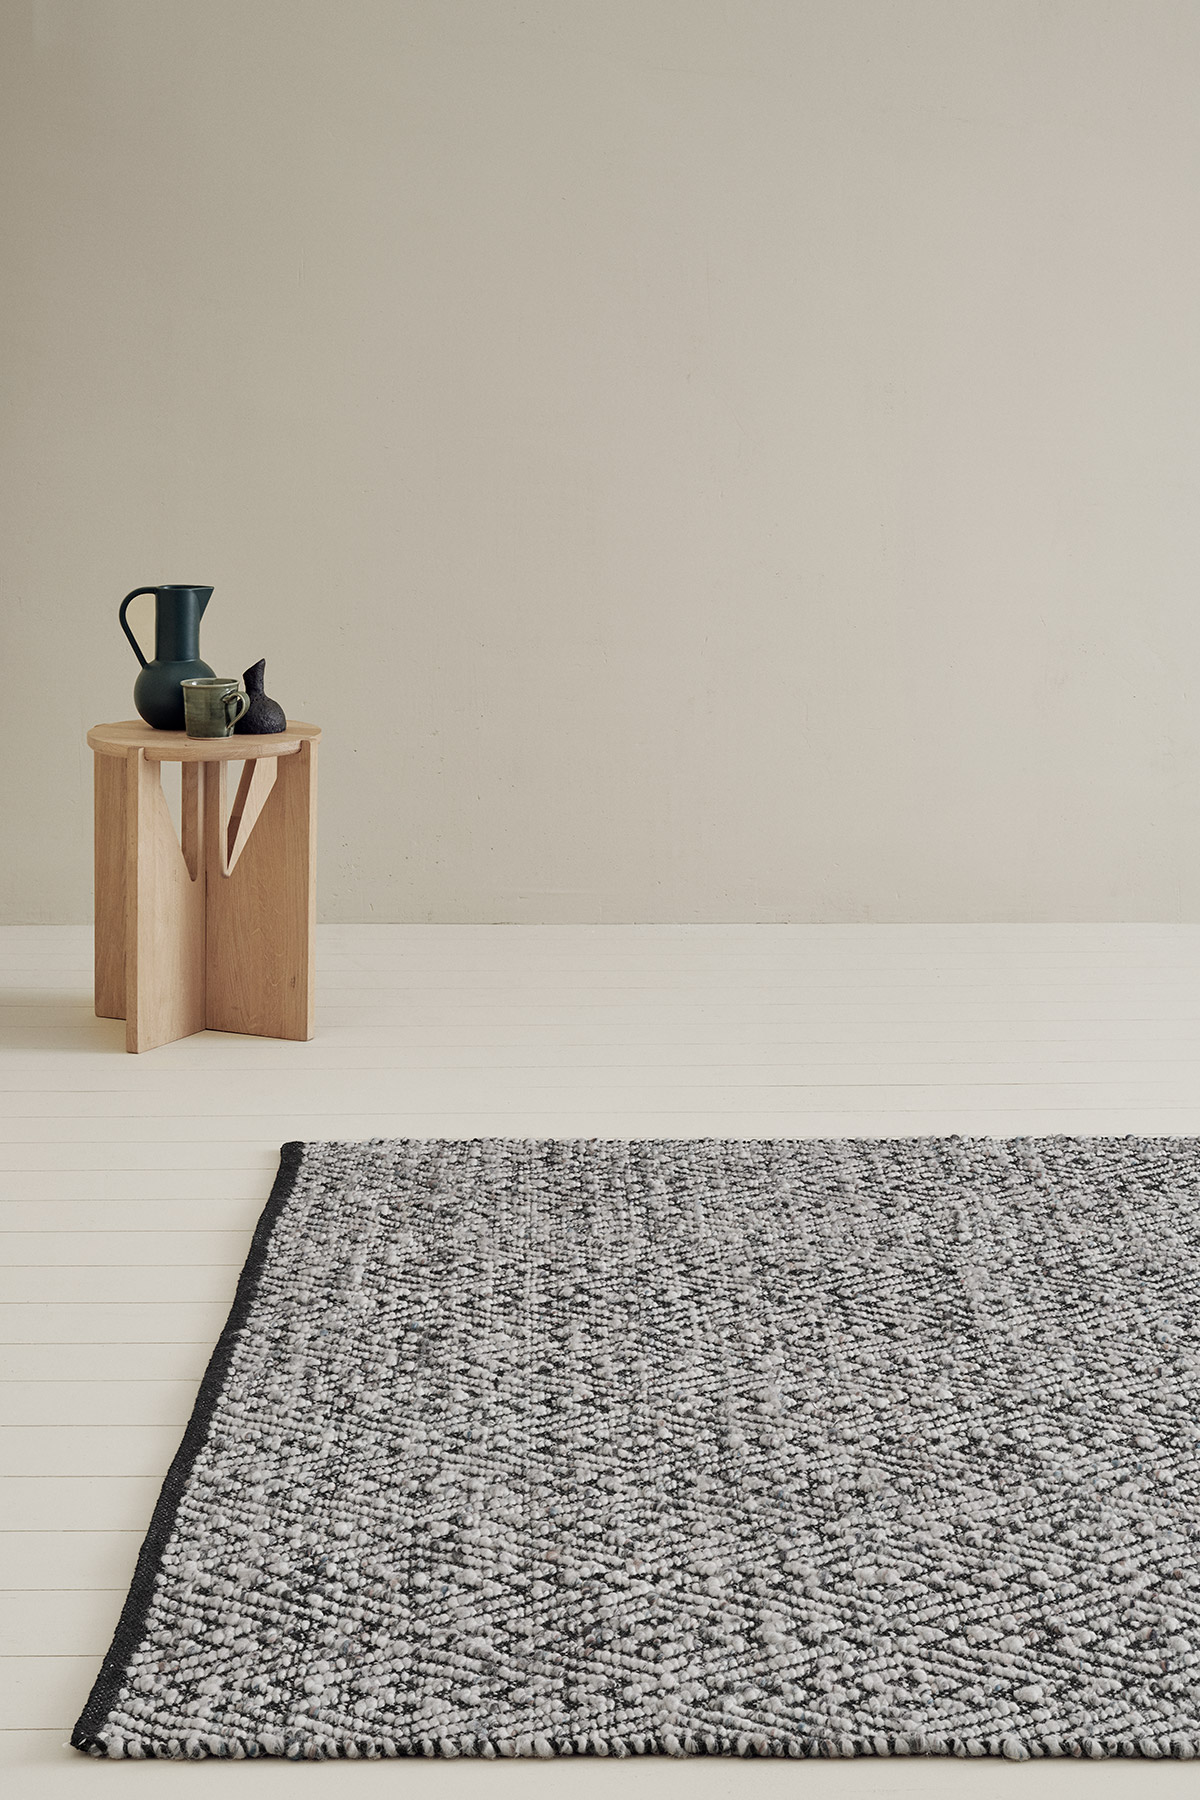 black and white geometric rug in minimal room